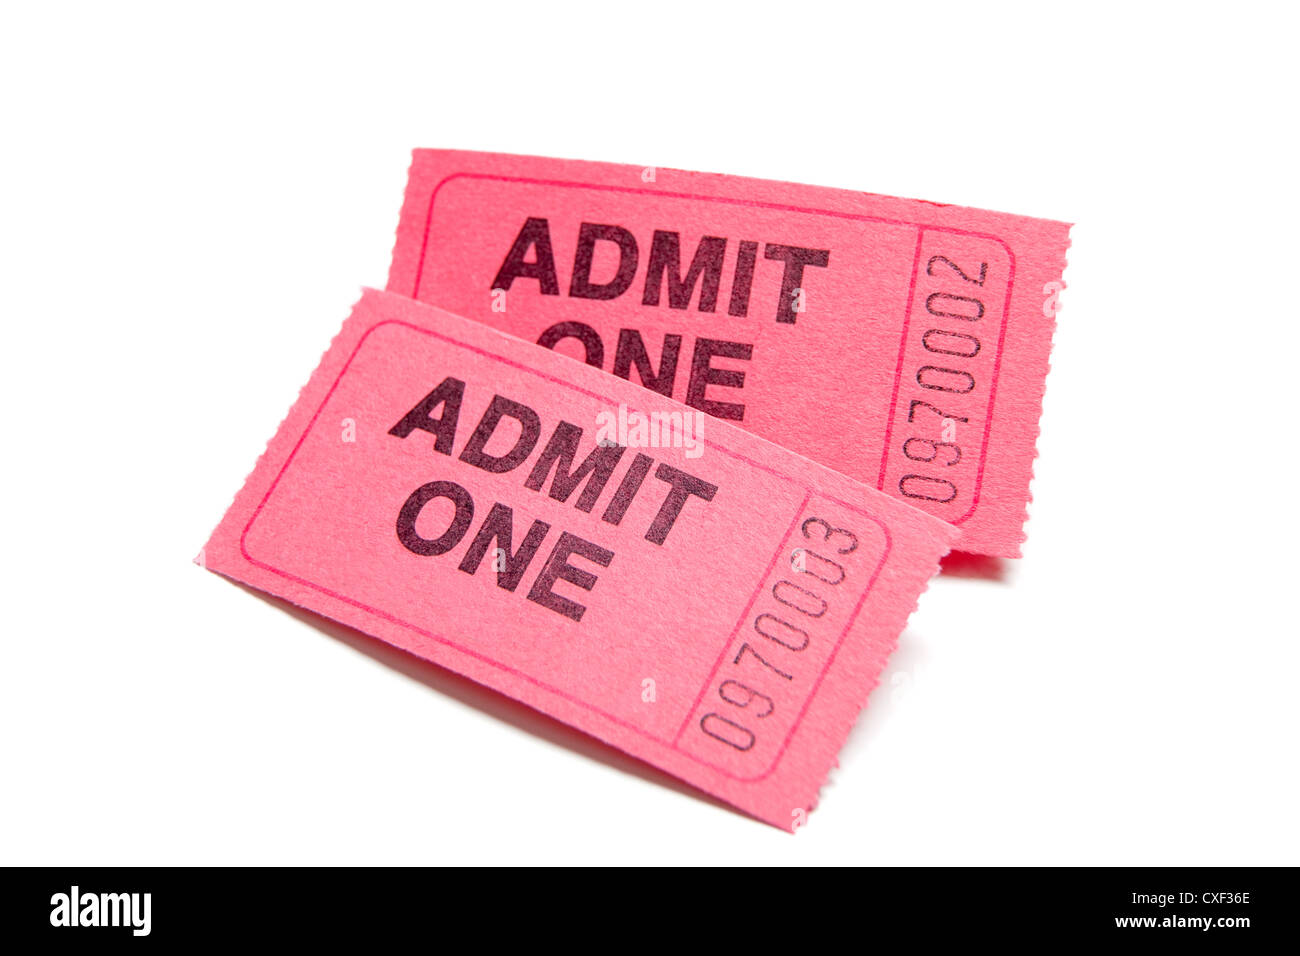 Two admission tickets on a white background - Stock Image